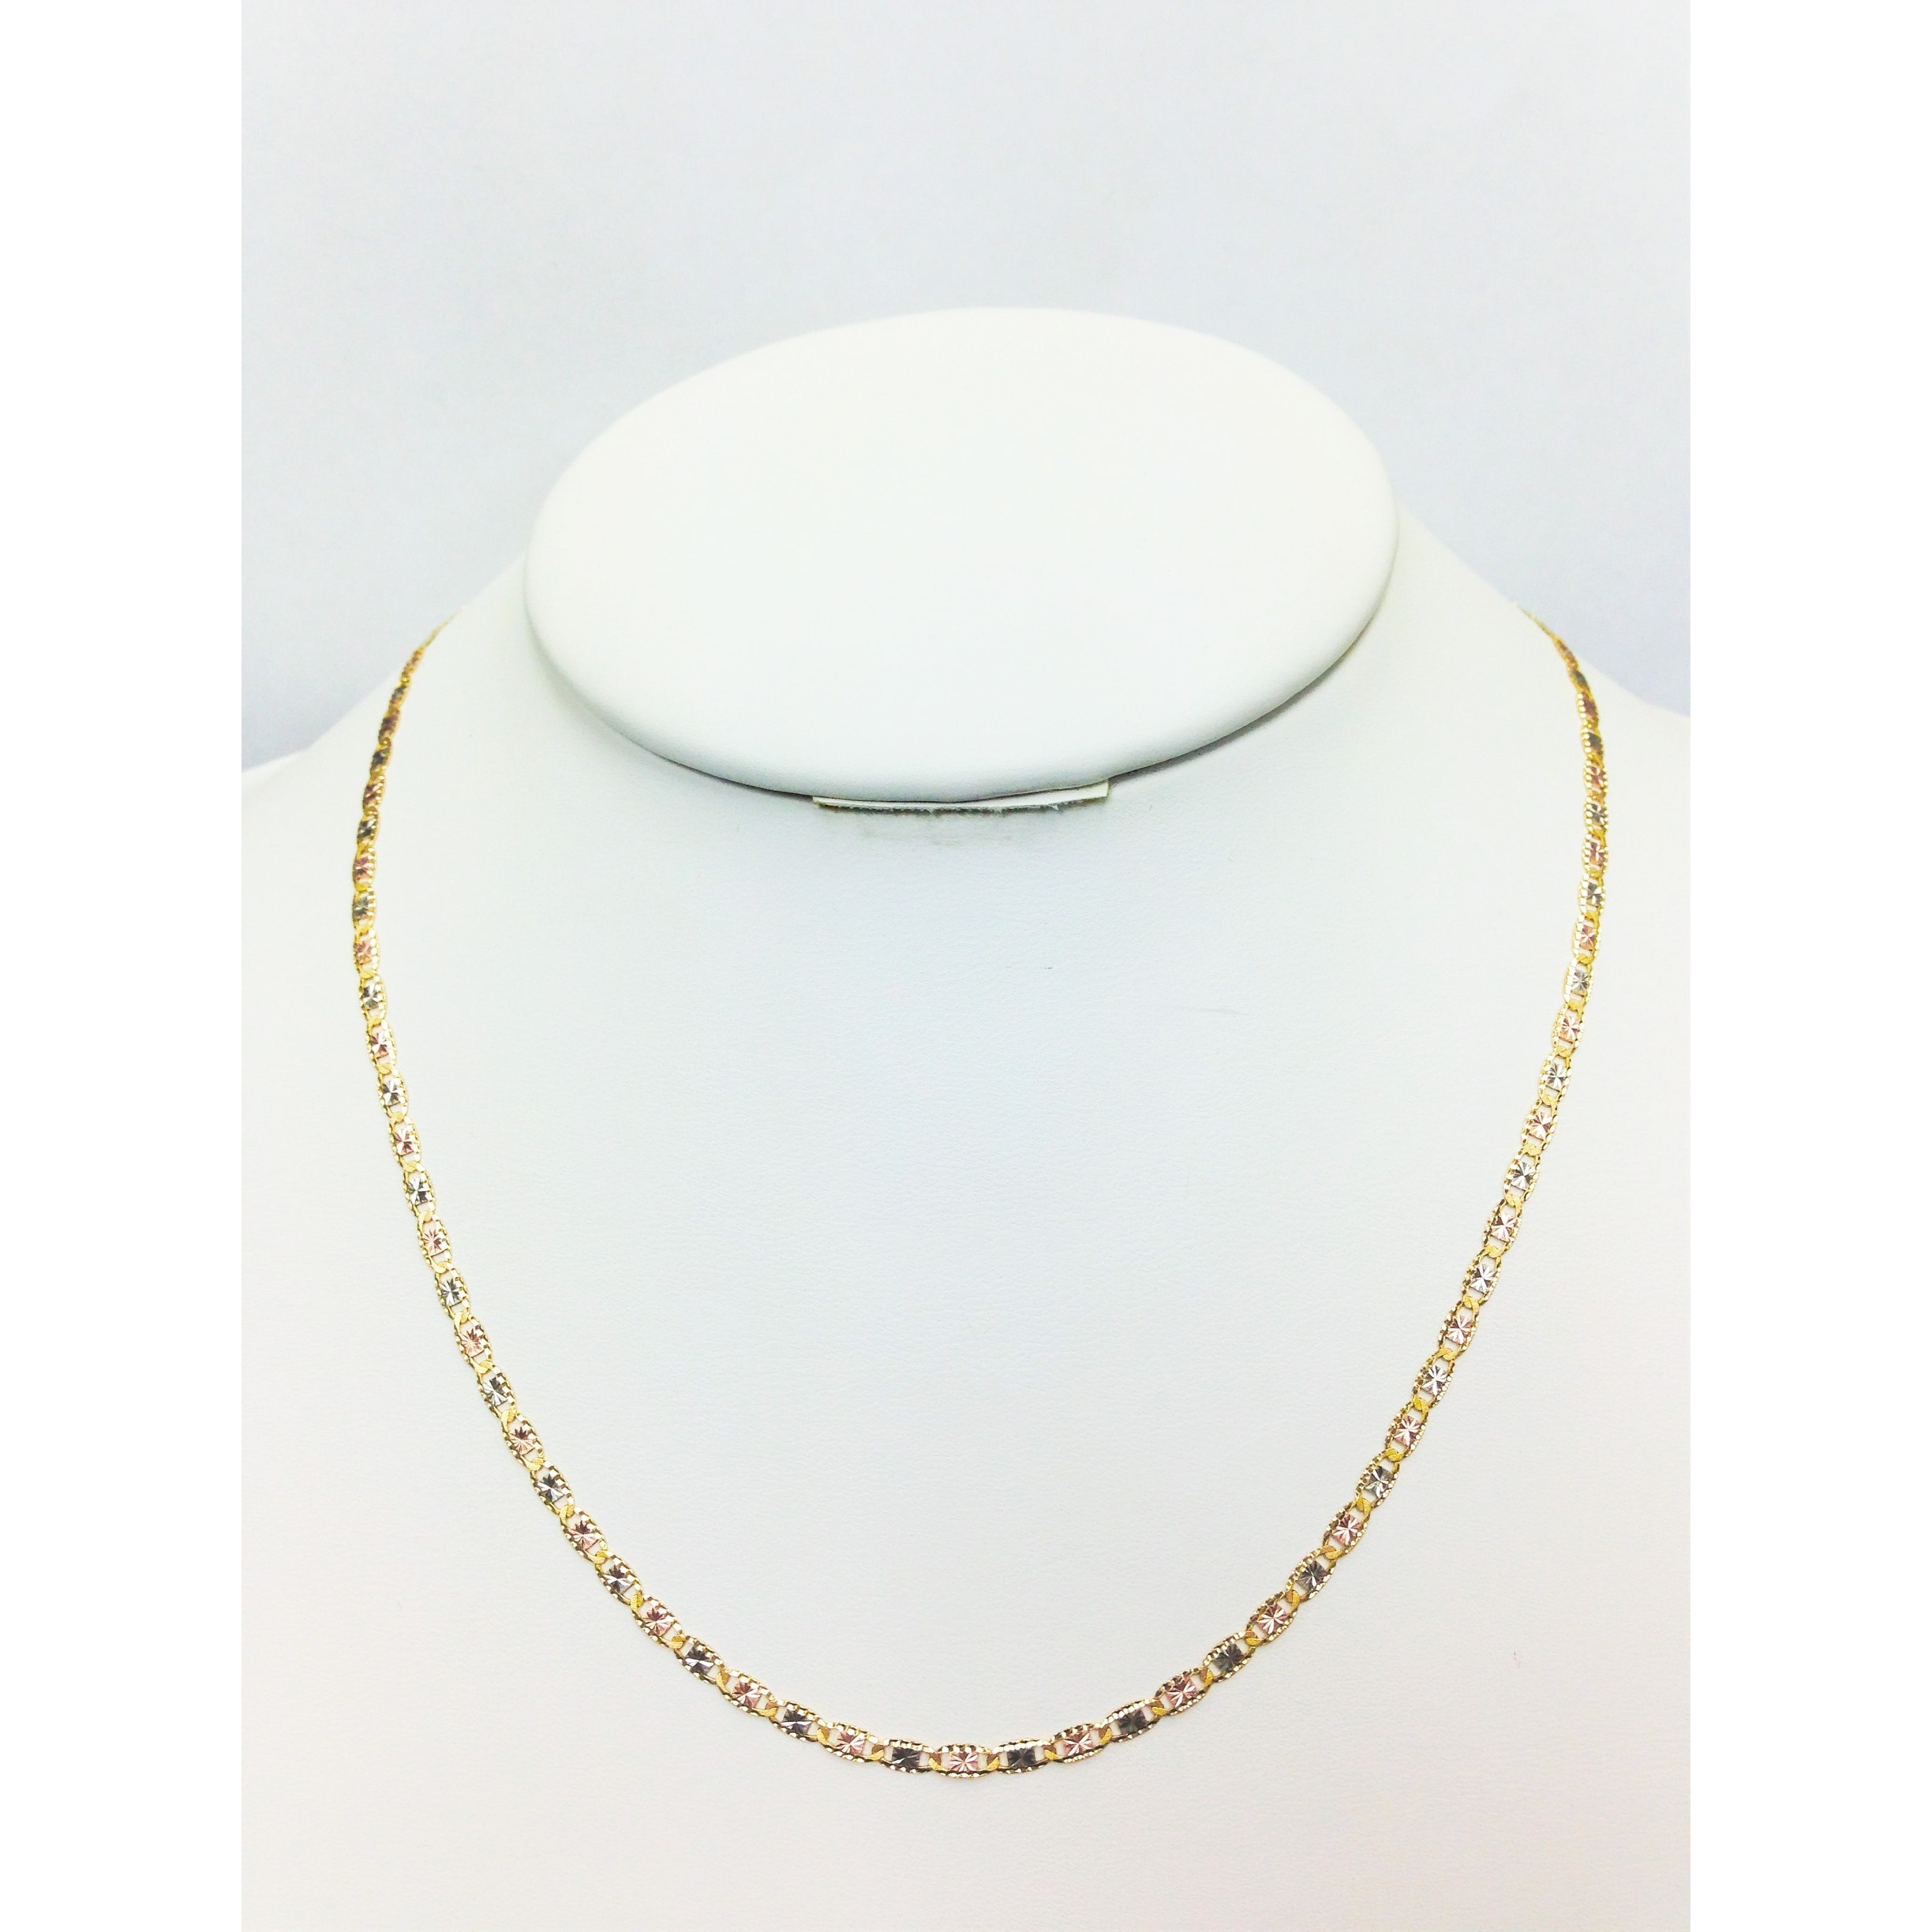 fusion gold yellow miansai products necklace silver polishedgoldsilver color pendant chain